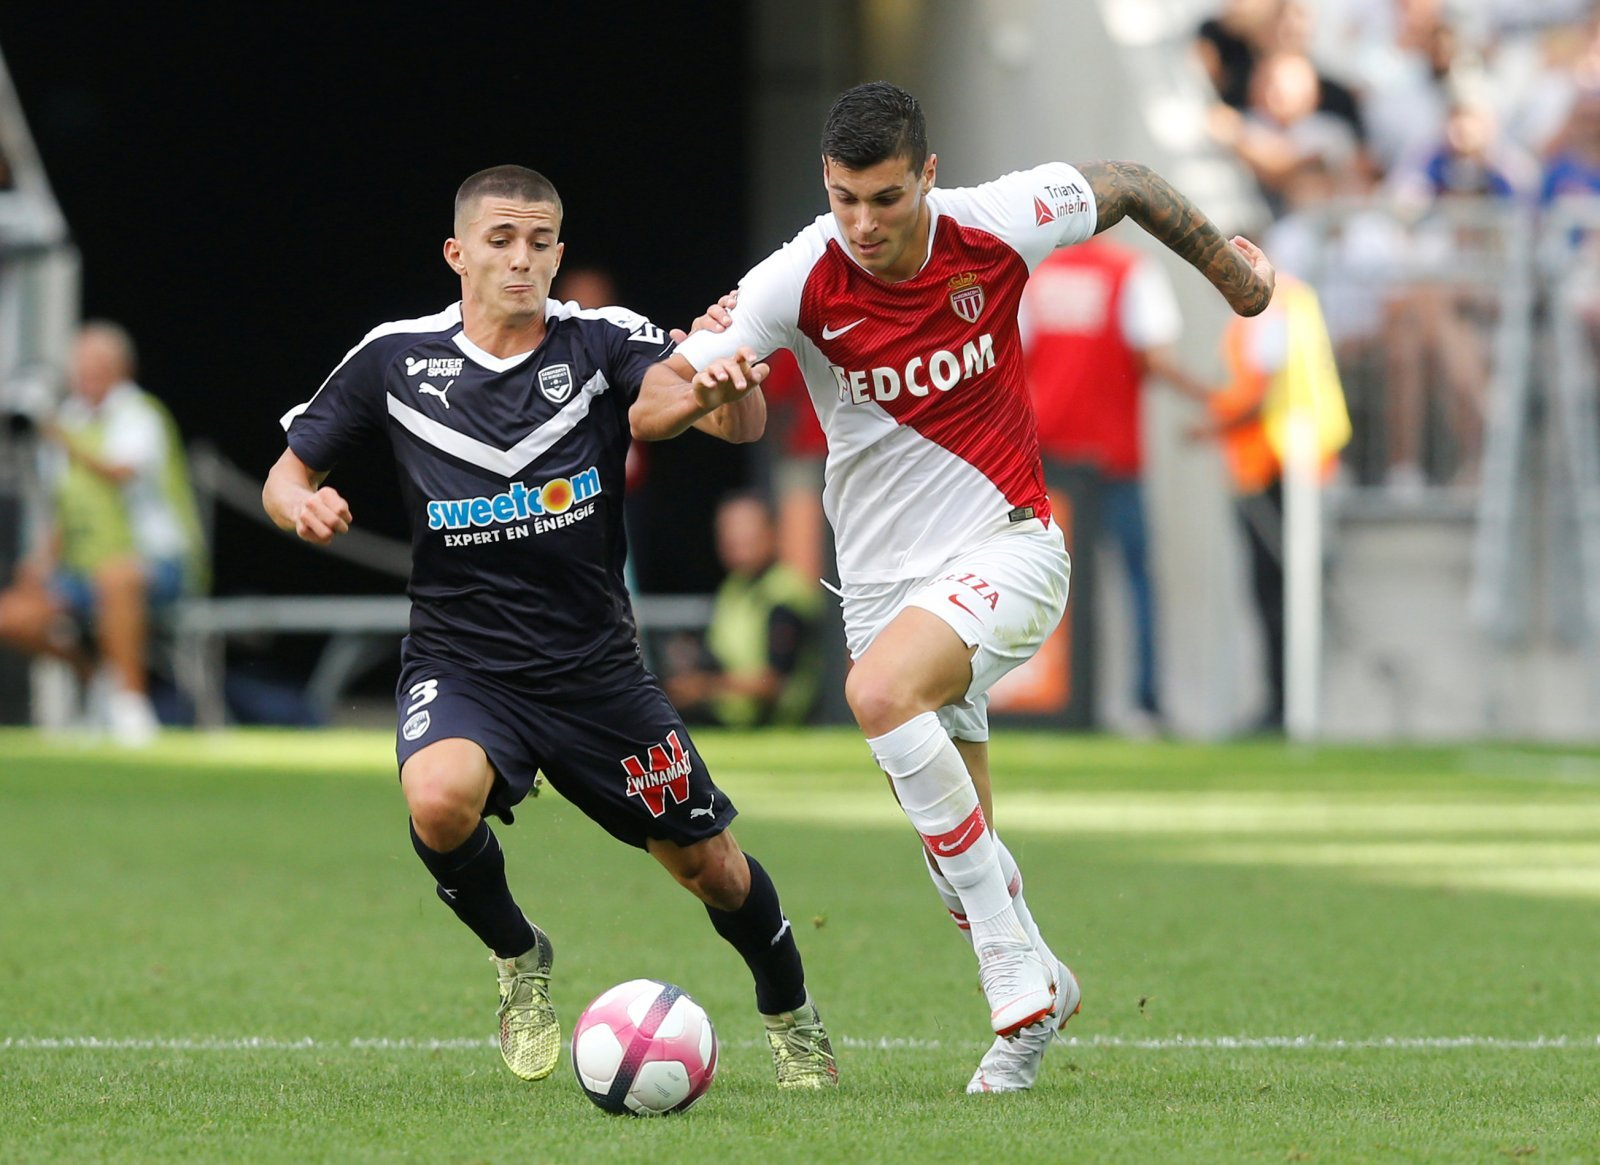 Pellegri the kind of wonderkid who'd thrive at Liverpool